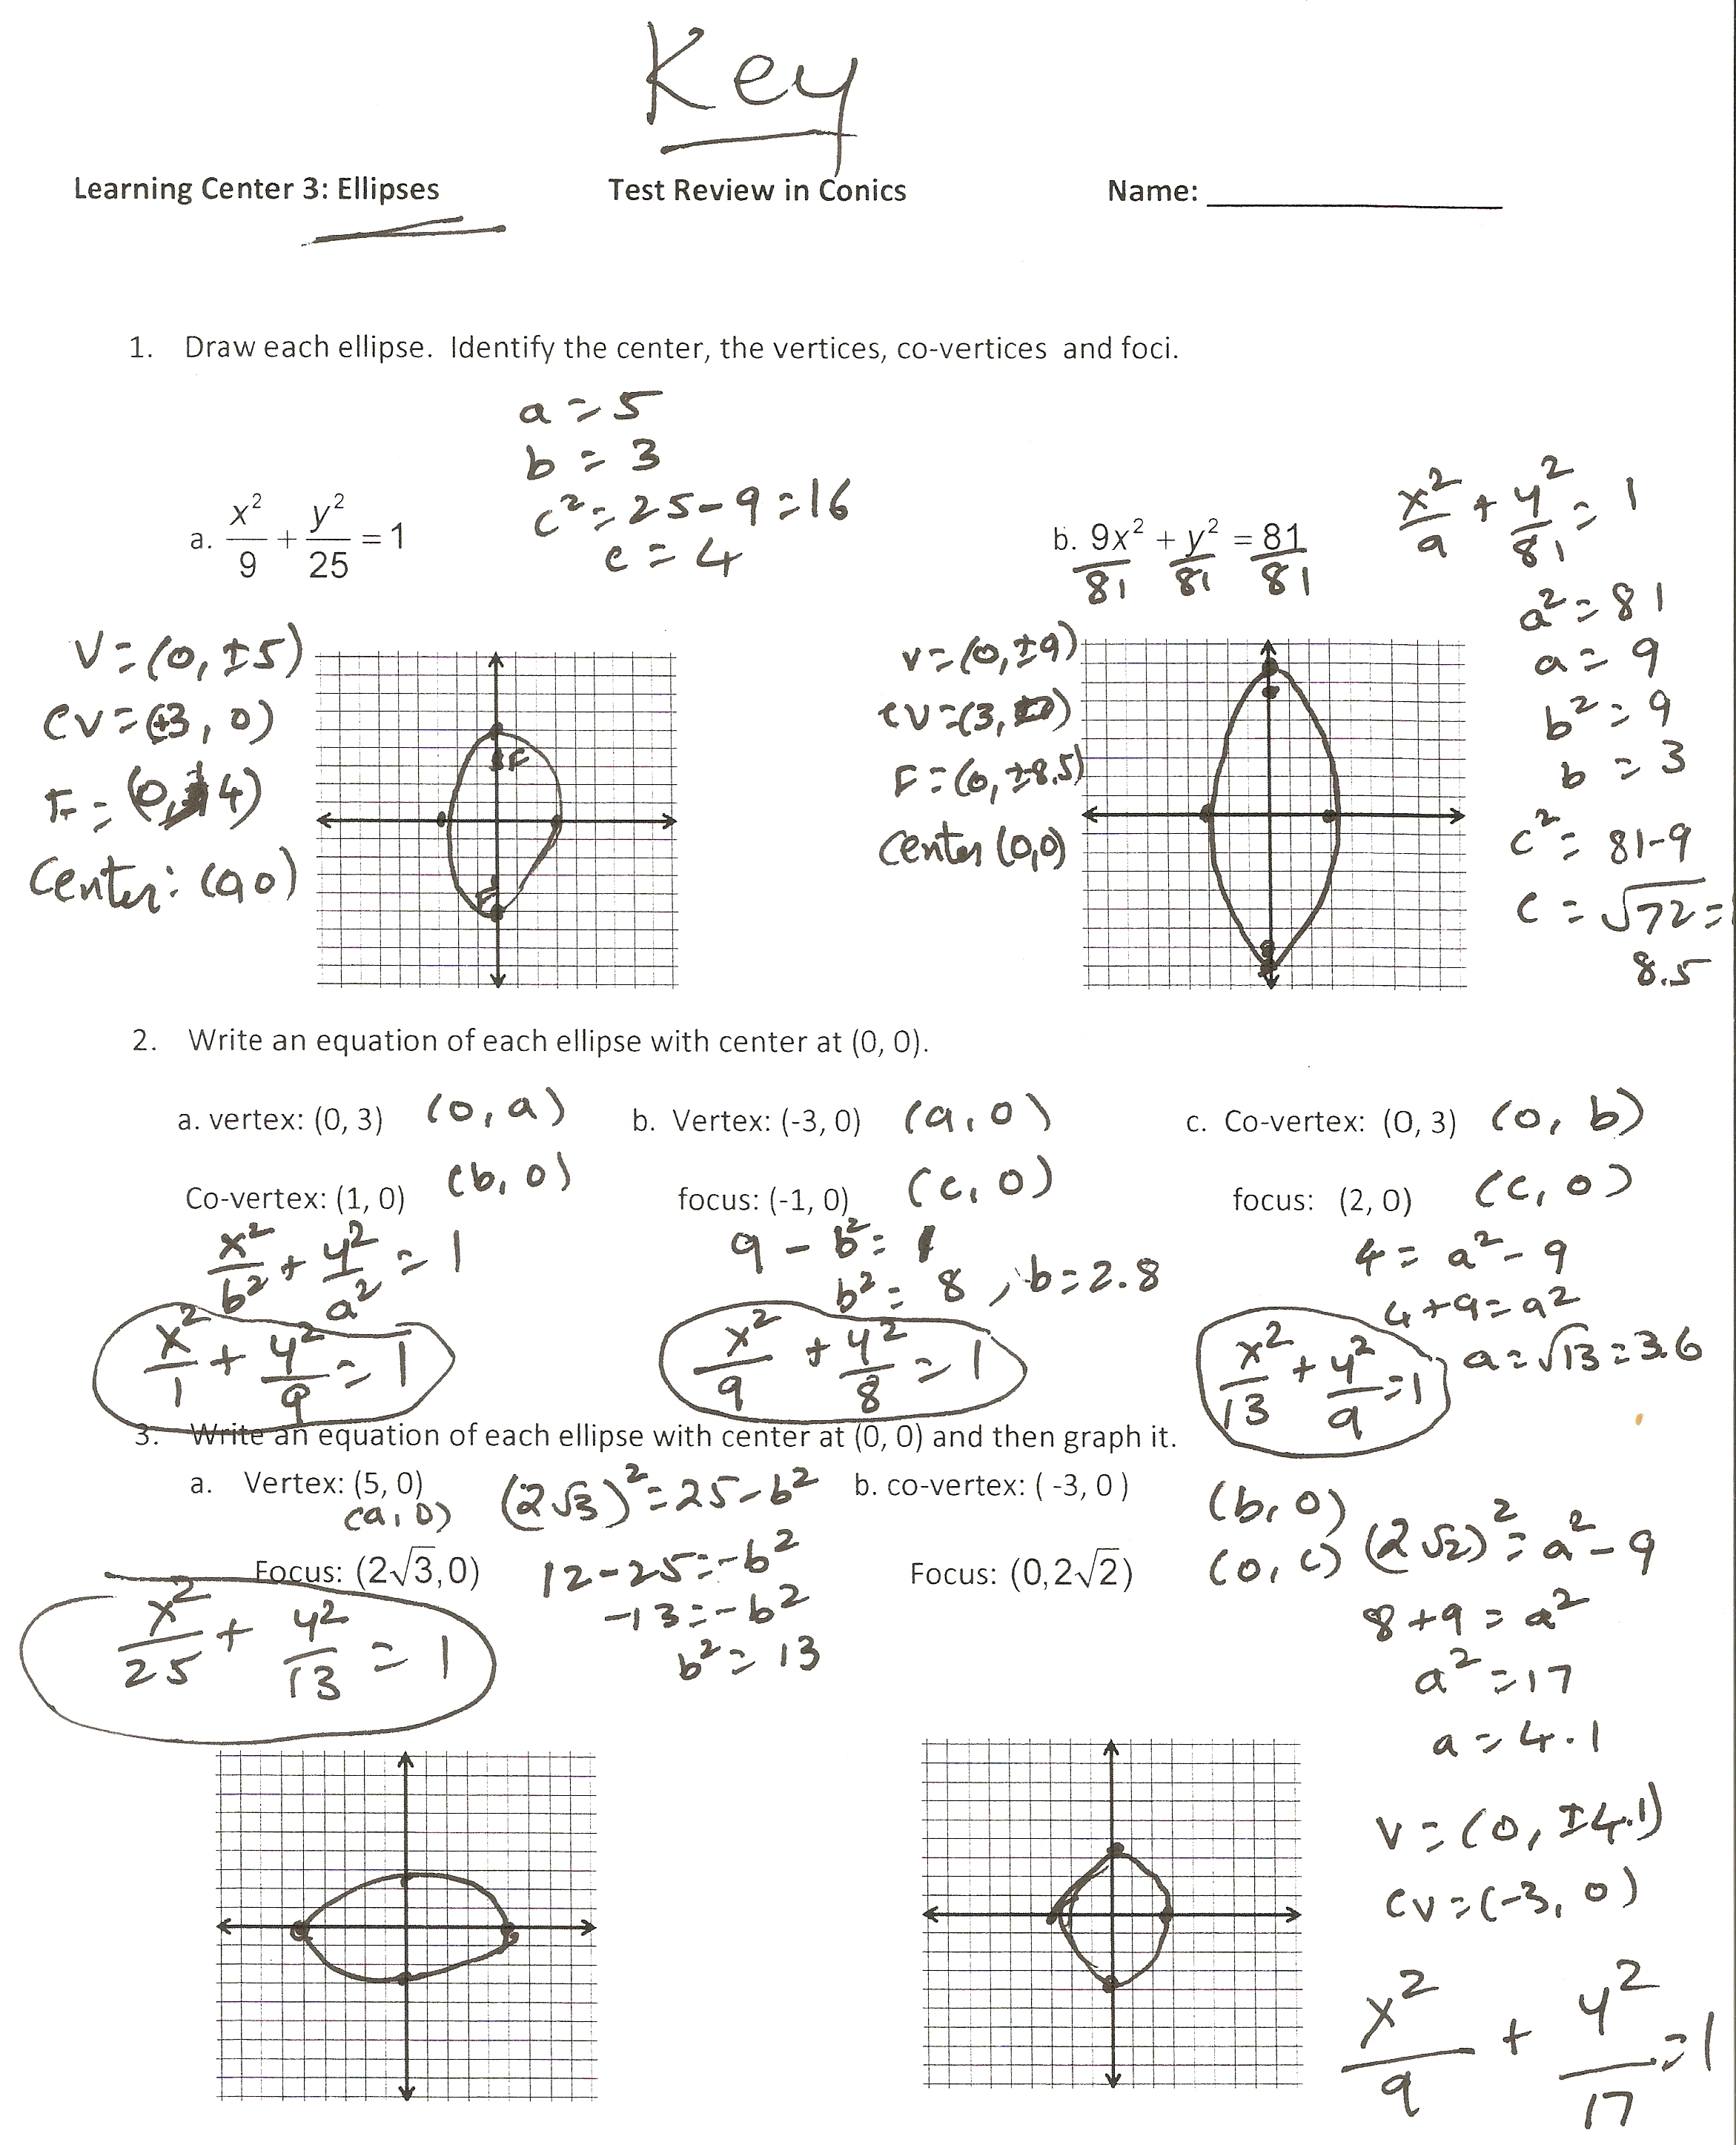 Dr Yadavalli April 2011 – Precalculus Review Worksheets